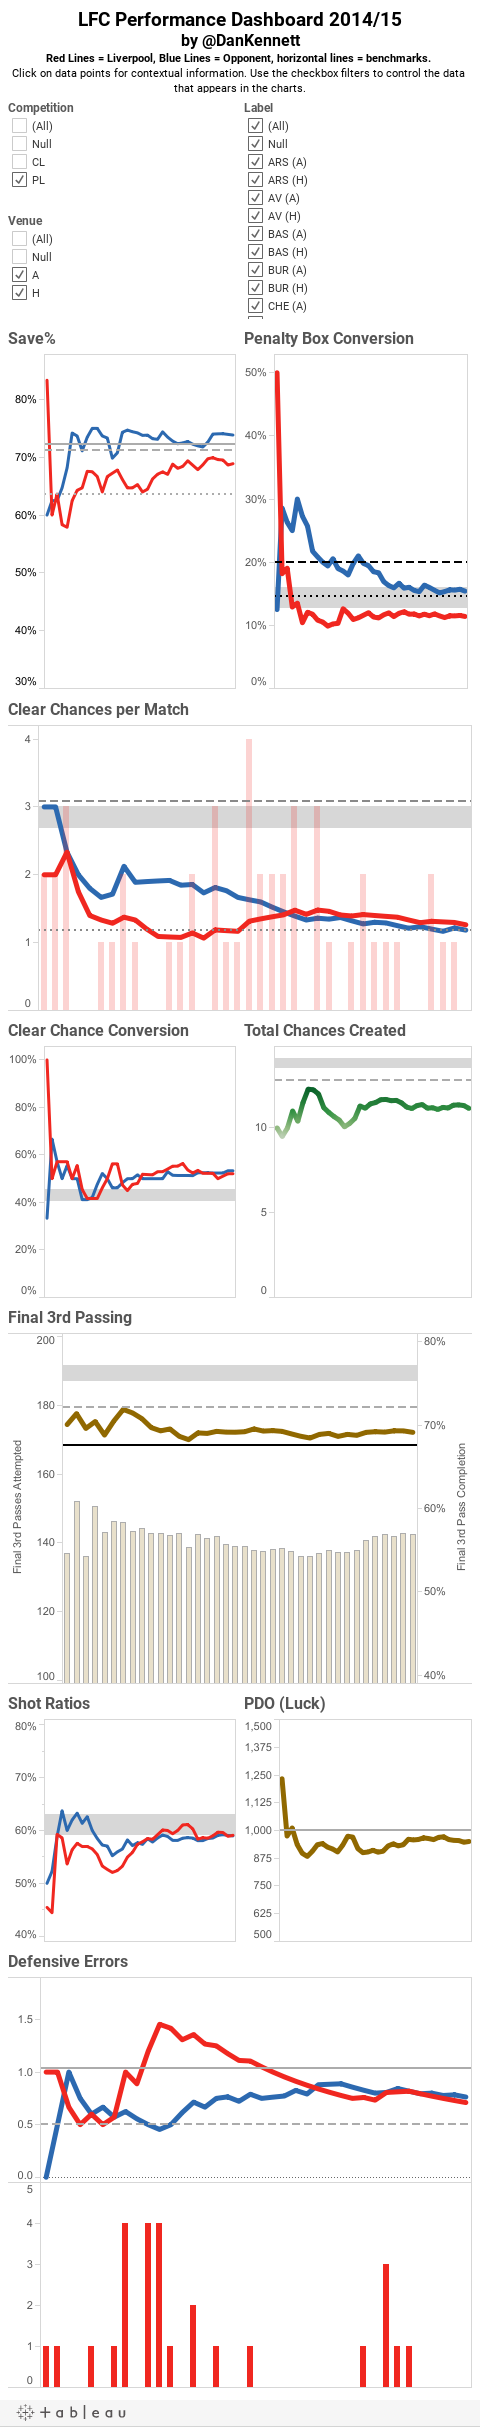 LFC Performance Dashboard 2014/15by @DanKennettRed Lines = Liverpool, Blue Lines = Opponent, horizontal lines = benchmarks. Click on data points for contextual information. Use the checkbox filters to control the data that appears in the charts.Summar